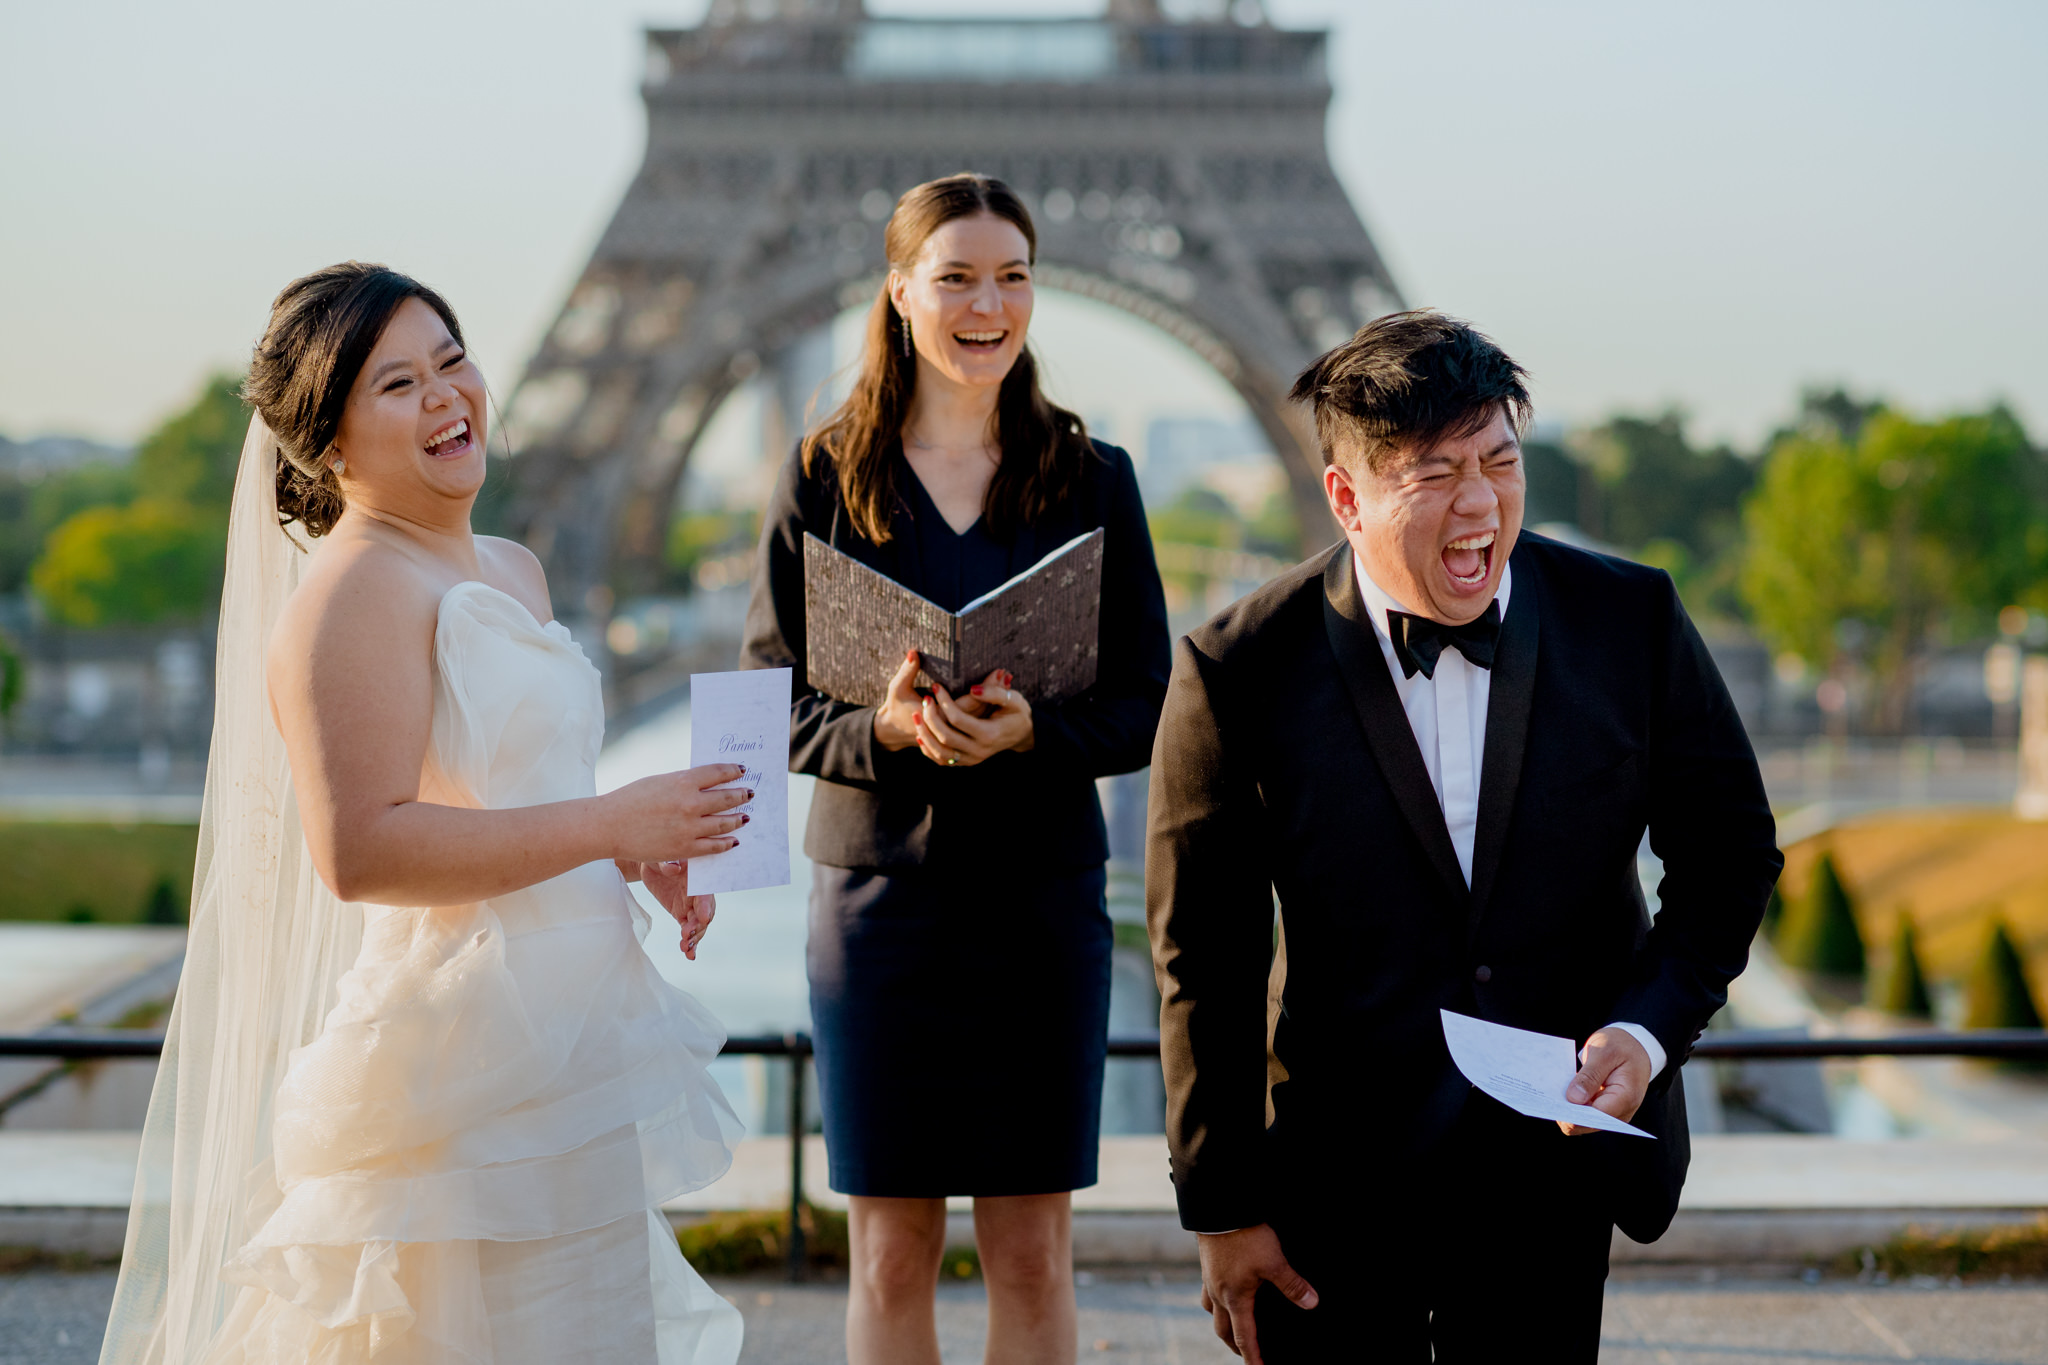 A groom laughs uncontrollably whilst he recites his vows in front of the Eiffel Tower